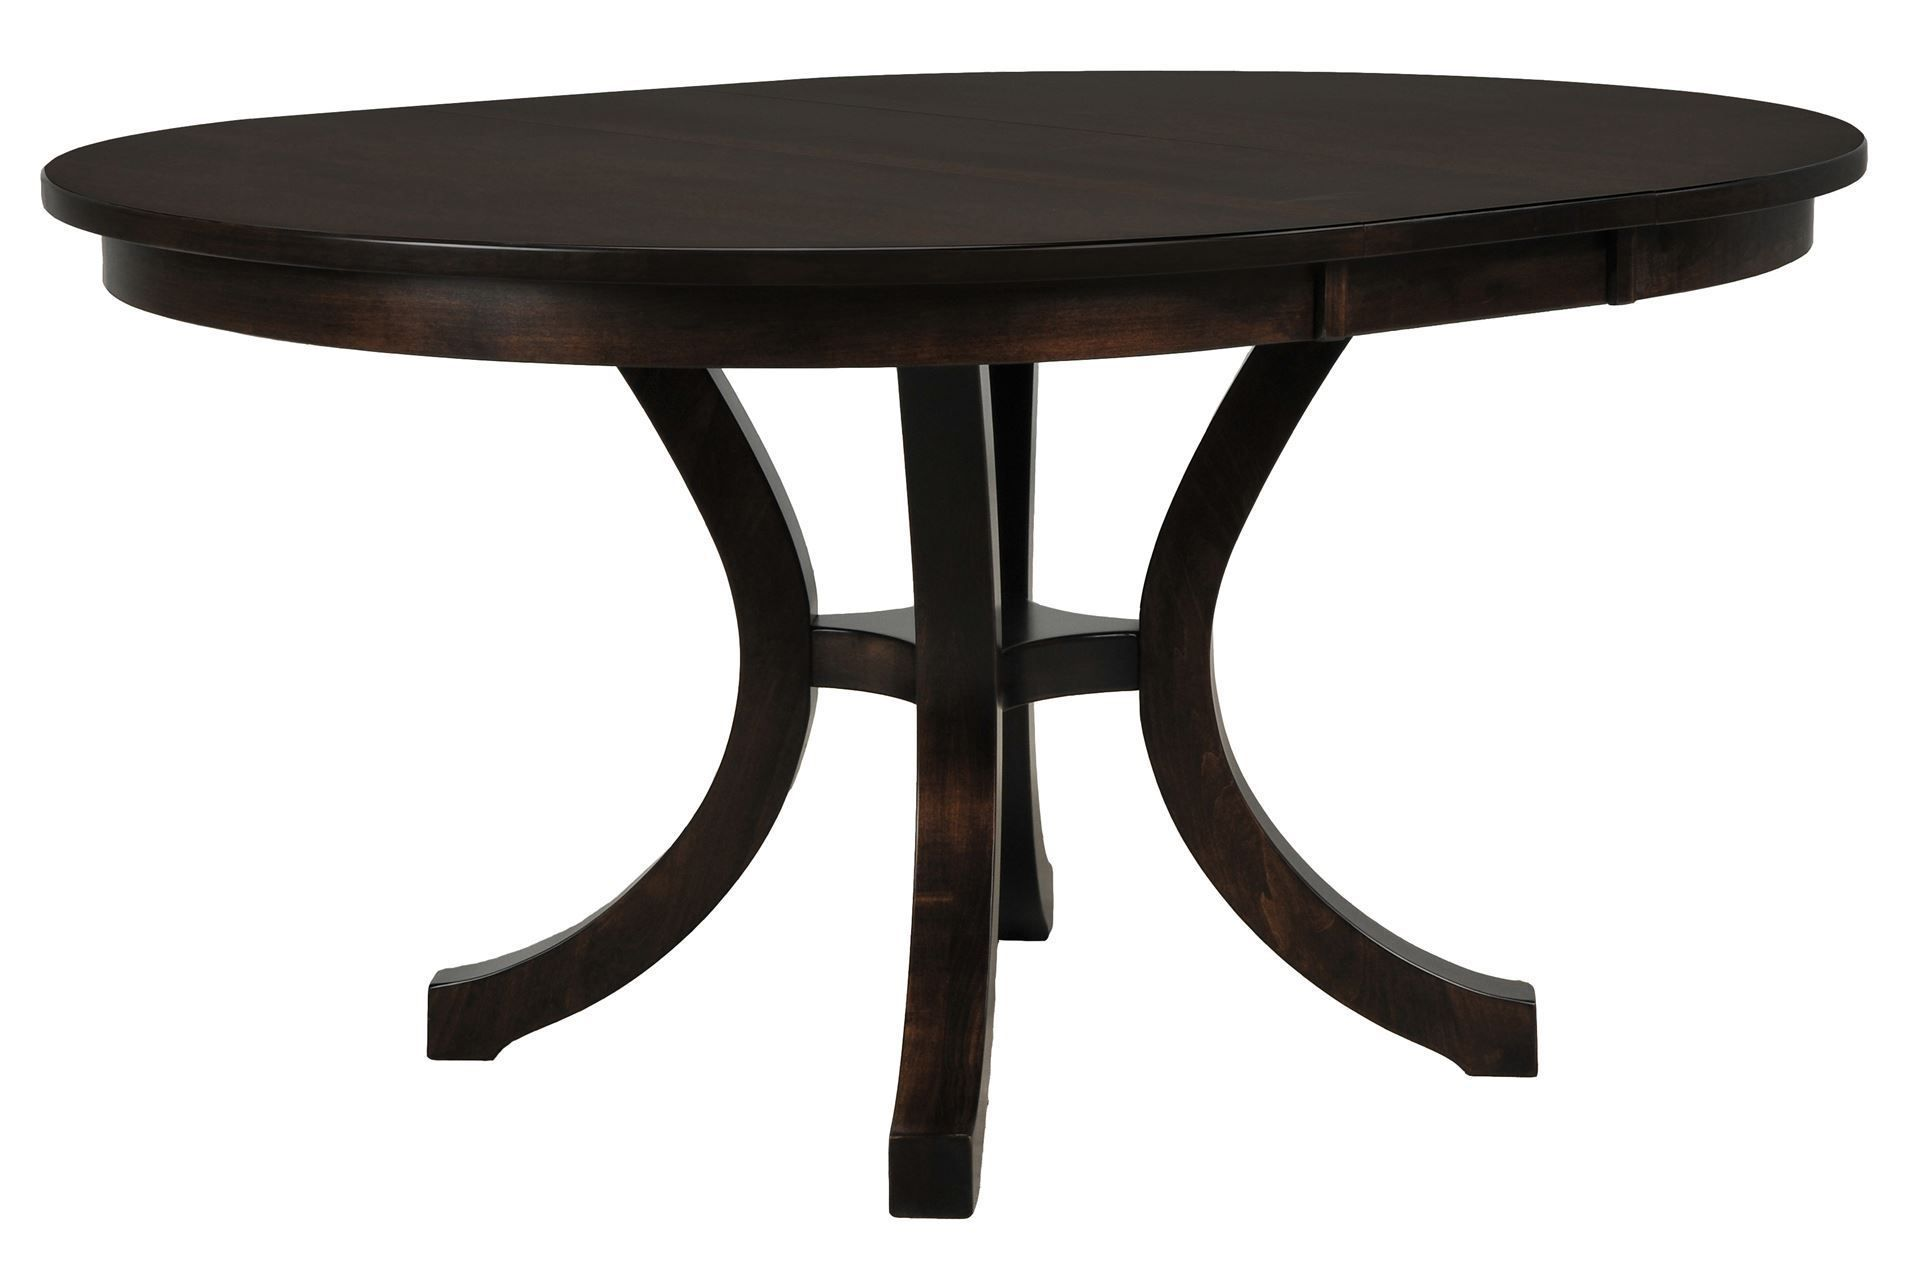 Living Spaces Graham Oval Extension Dining Table Maybe This